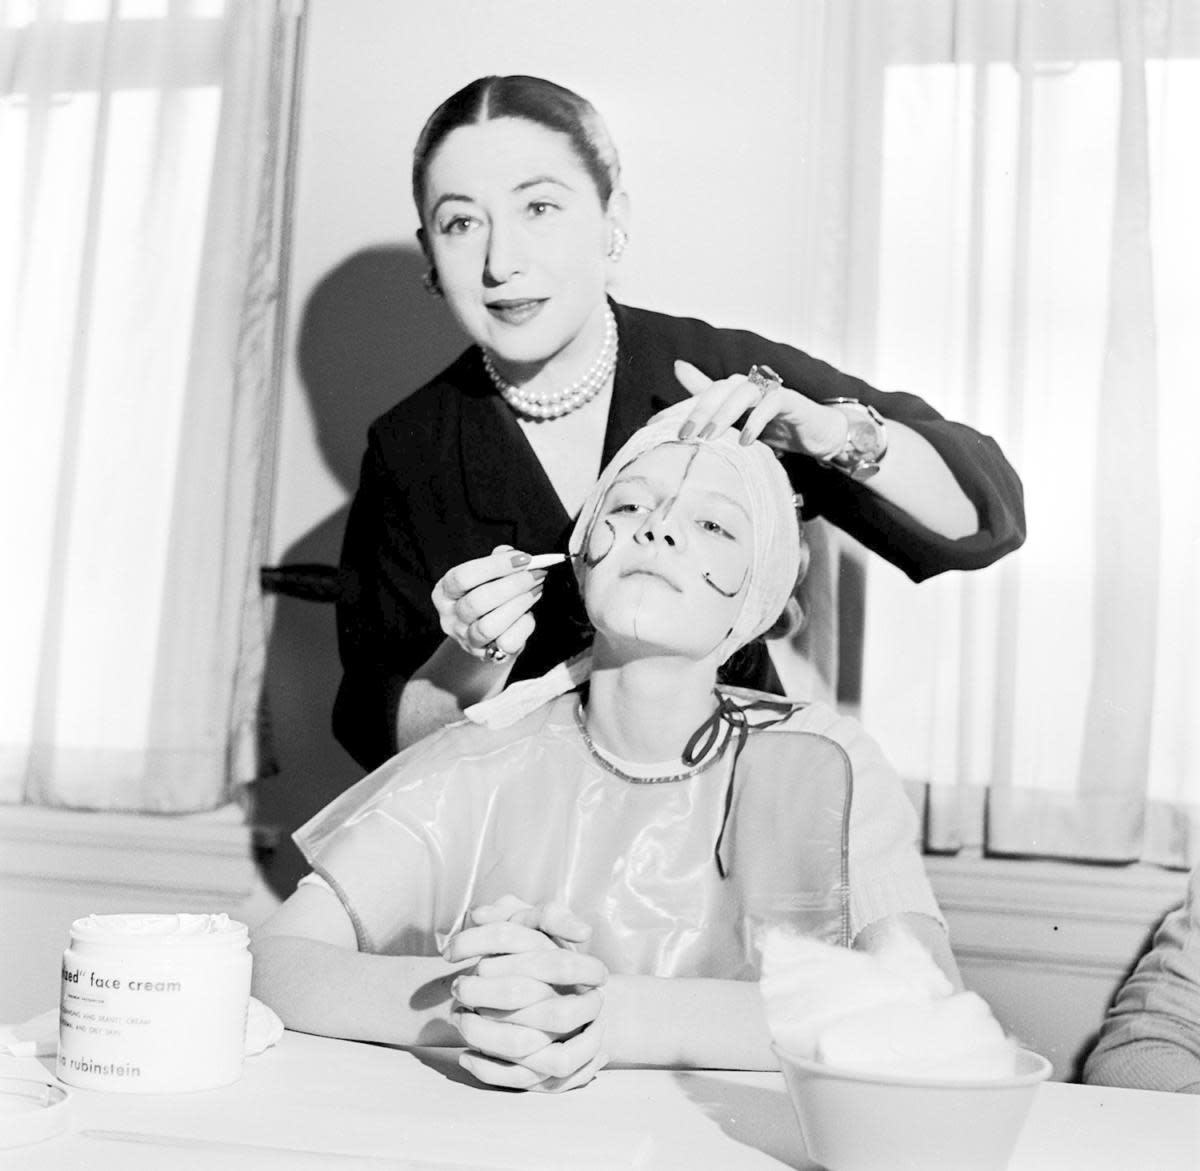 Beauty expert Helena Rubinstein illustrating the shape of the basic lines on the face so that make-up can be applied to flatter individual contours, 1935. (Credit: Orlando/Three Lions/Getty Images)